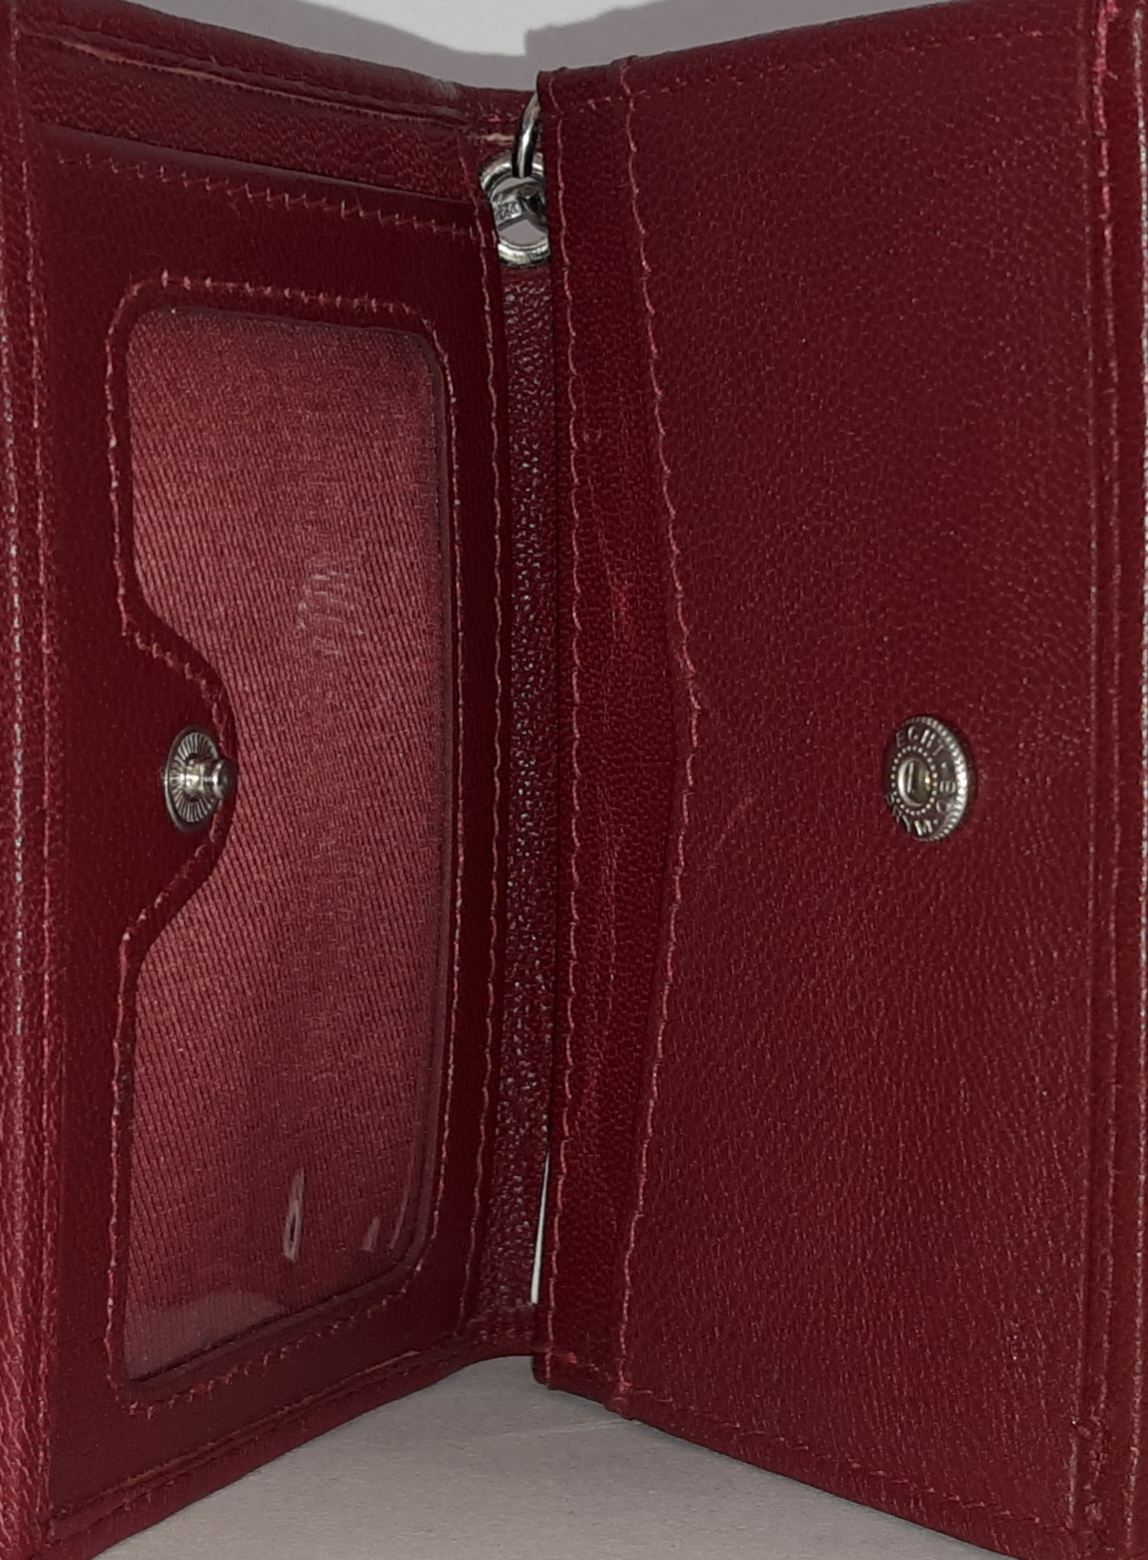 Image for the Red Leather Snap ID Holder/ wallet product